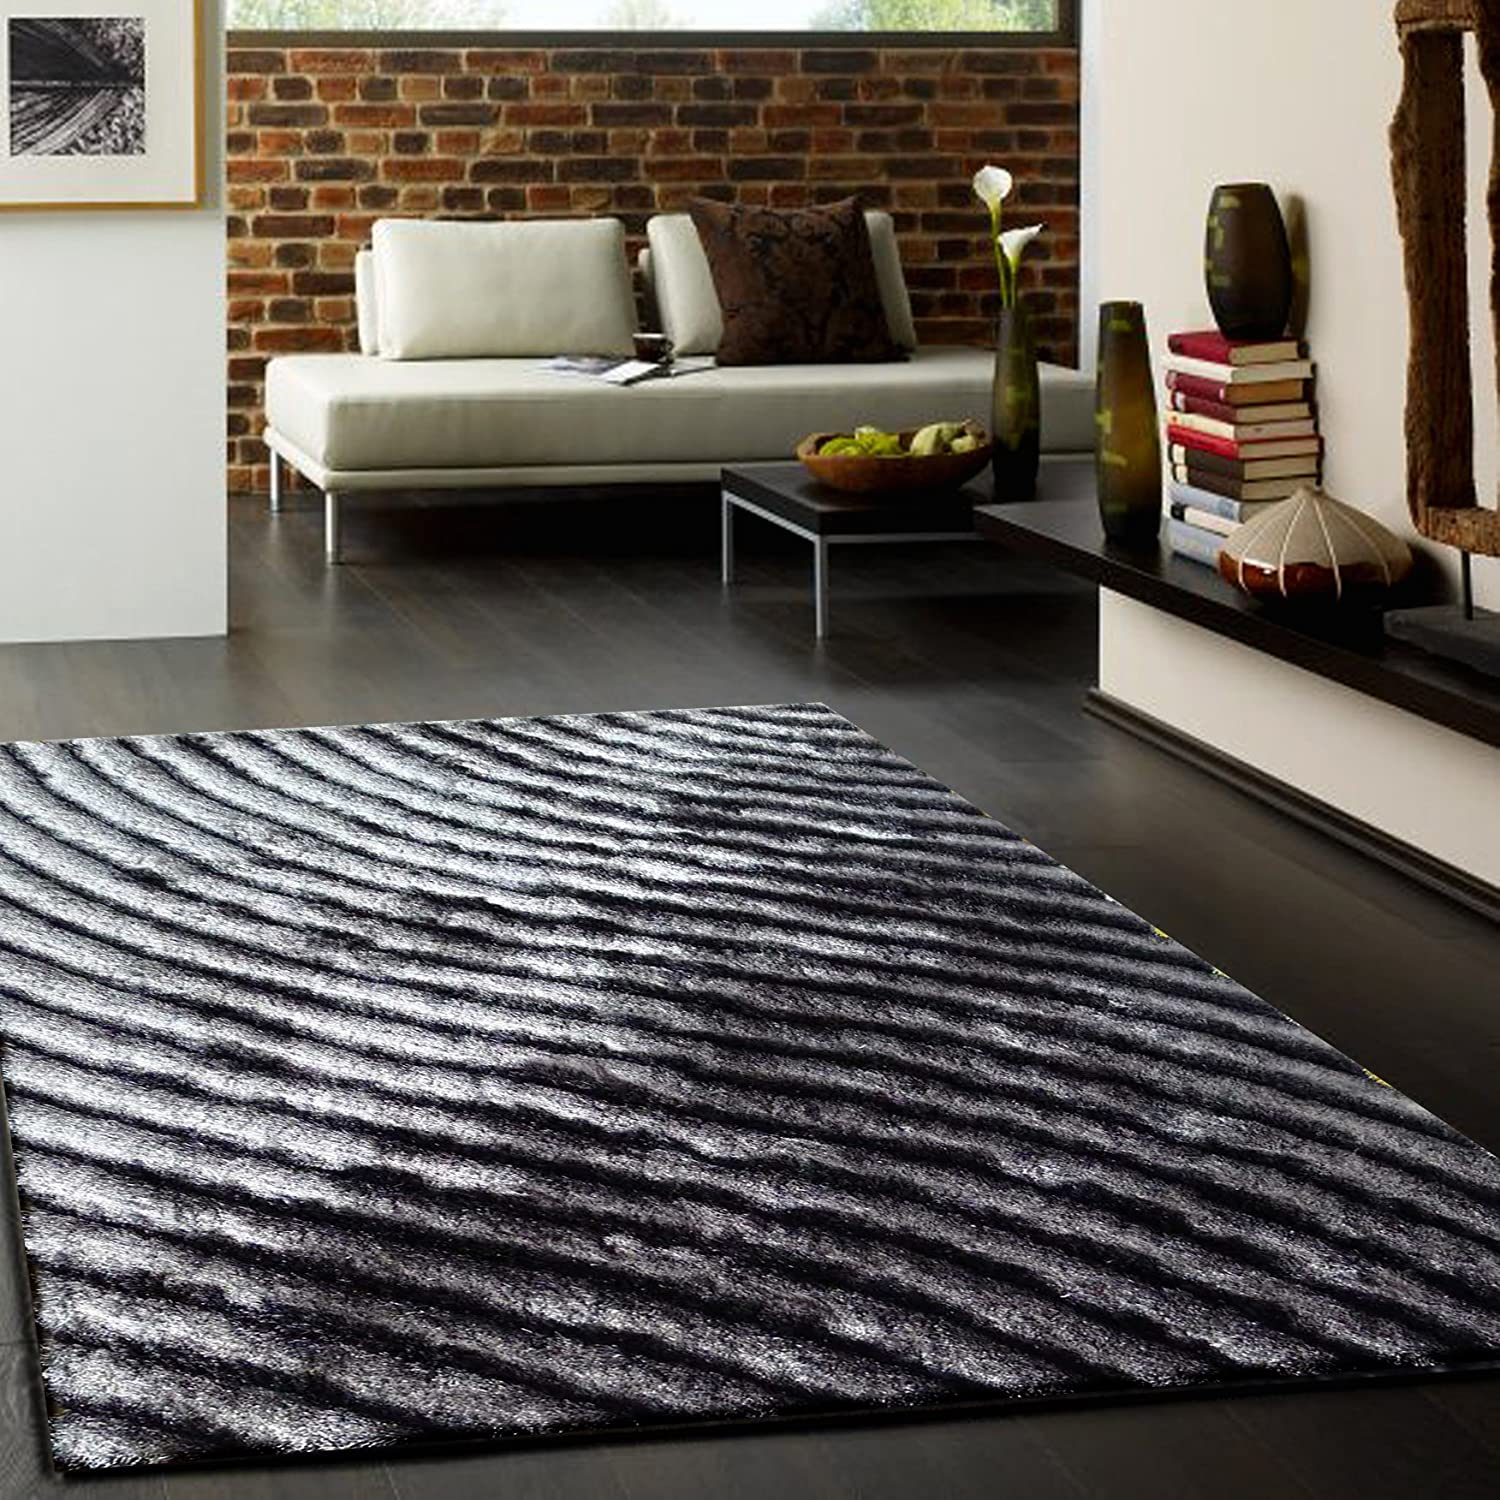 Marvelous 3D Shag Collection, 3D Gray Area Shag Rug, Hand Tufted, ~5ft X 8ft (160 X  225cm), ON SALE!: Kitchen U0026 Dining